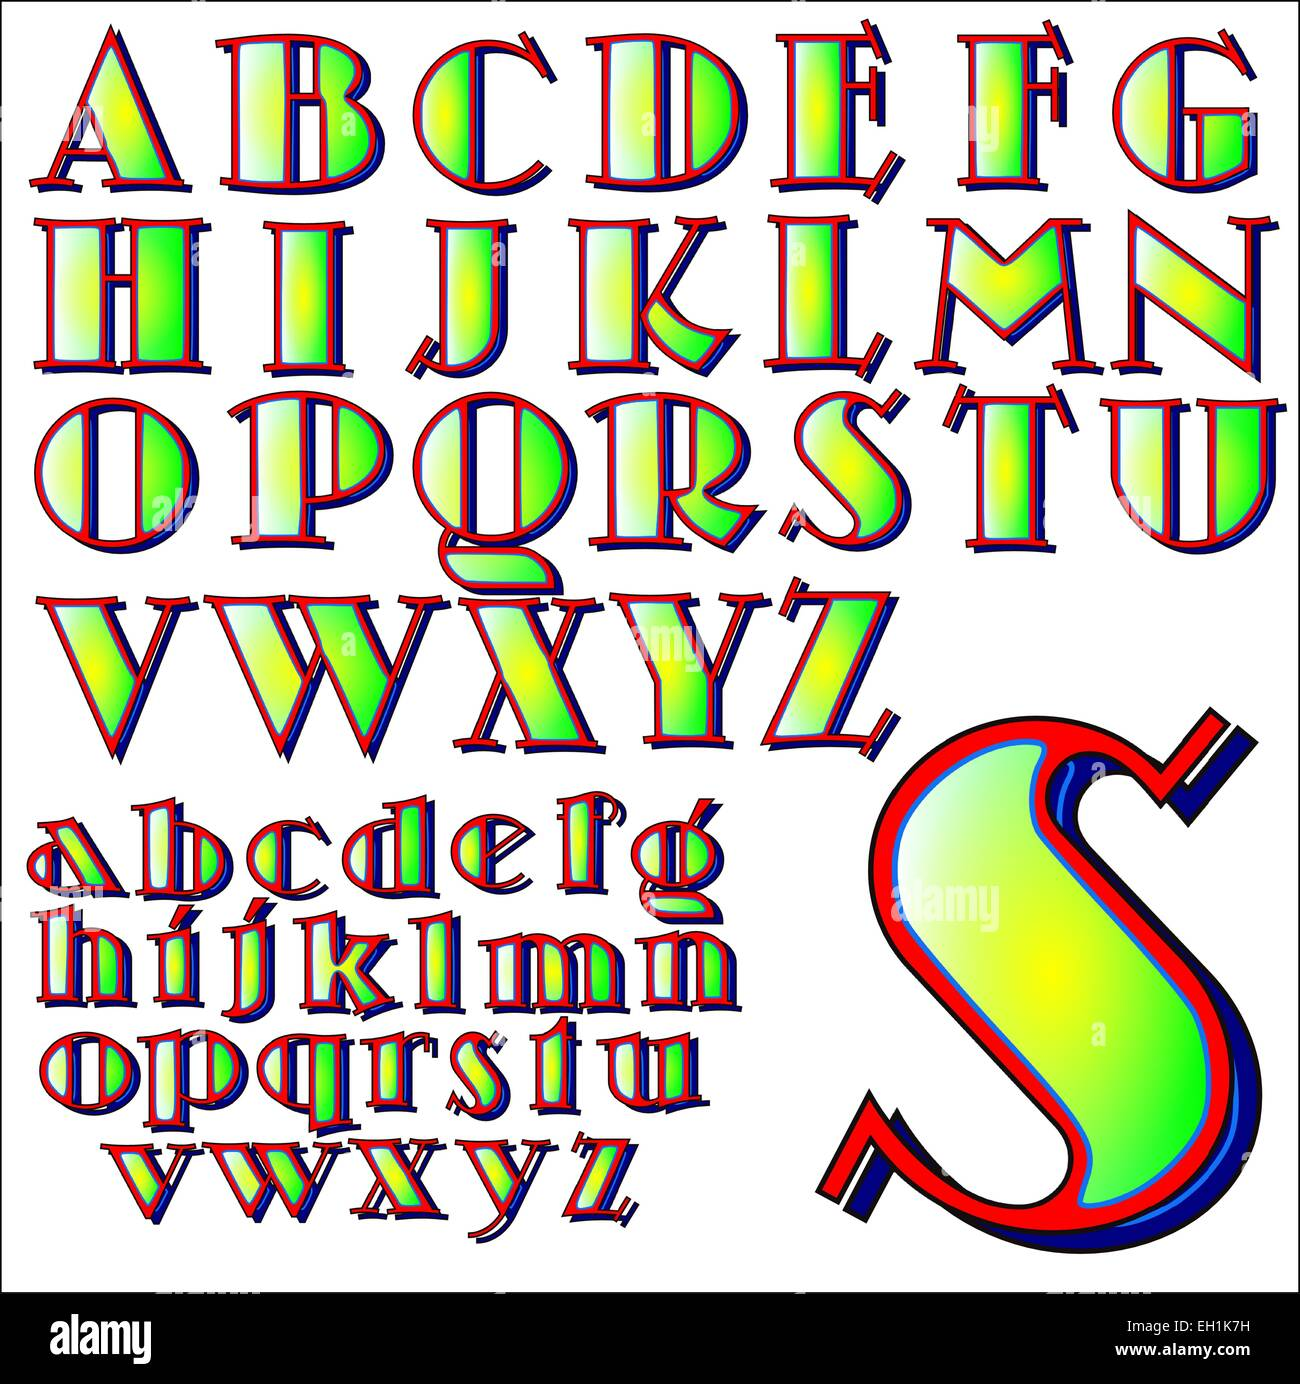 ABC Alphabet Lettering Design Set